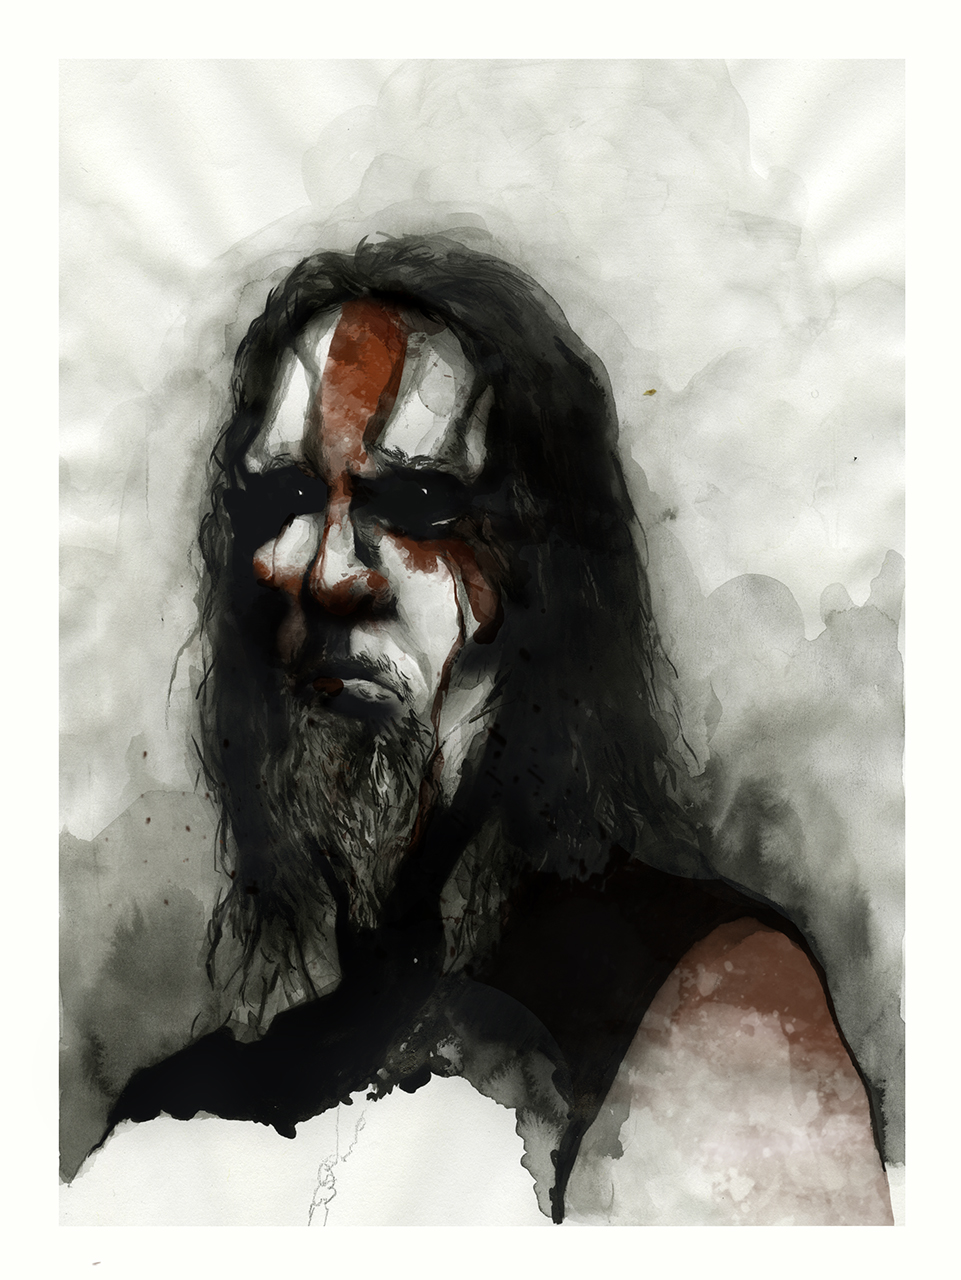 Gaahl, from the band Gorgoroth